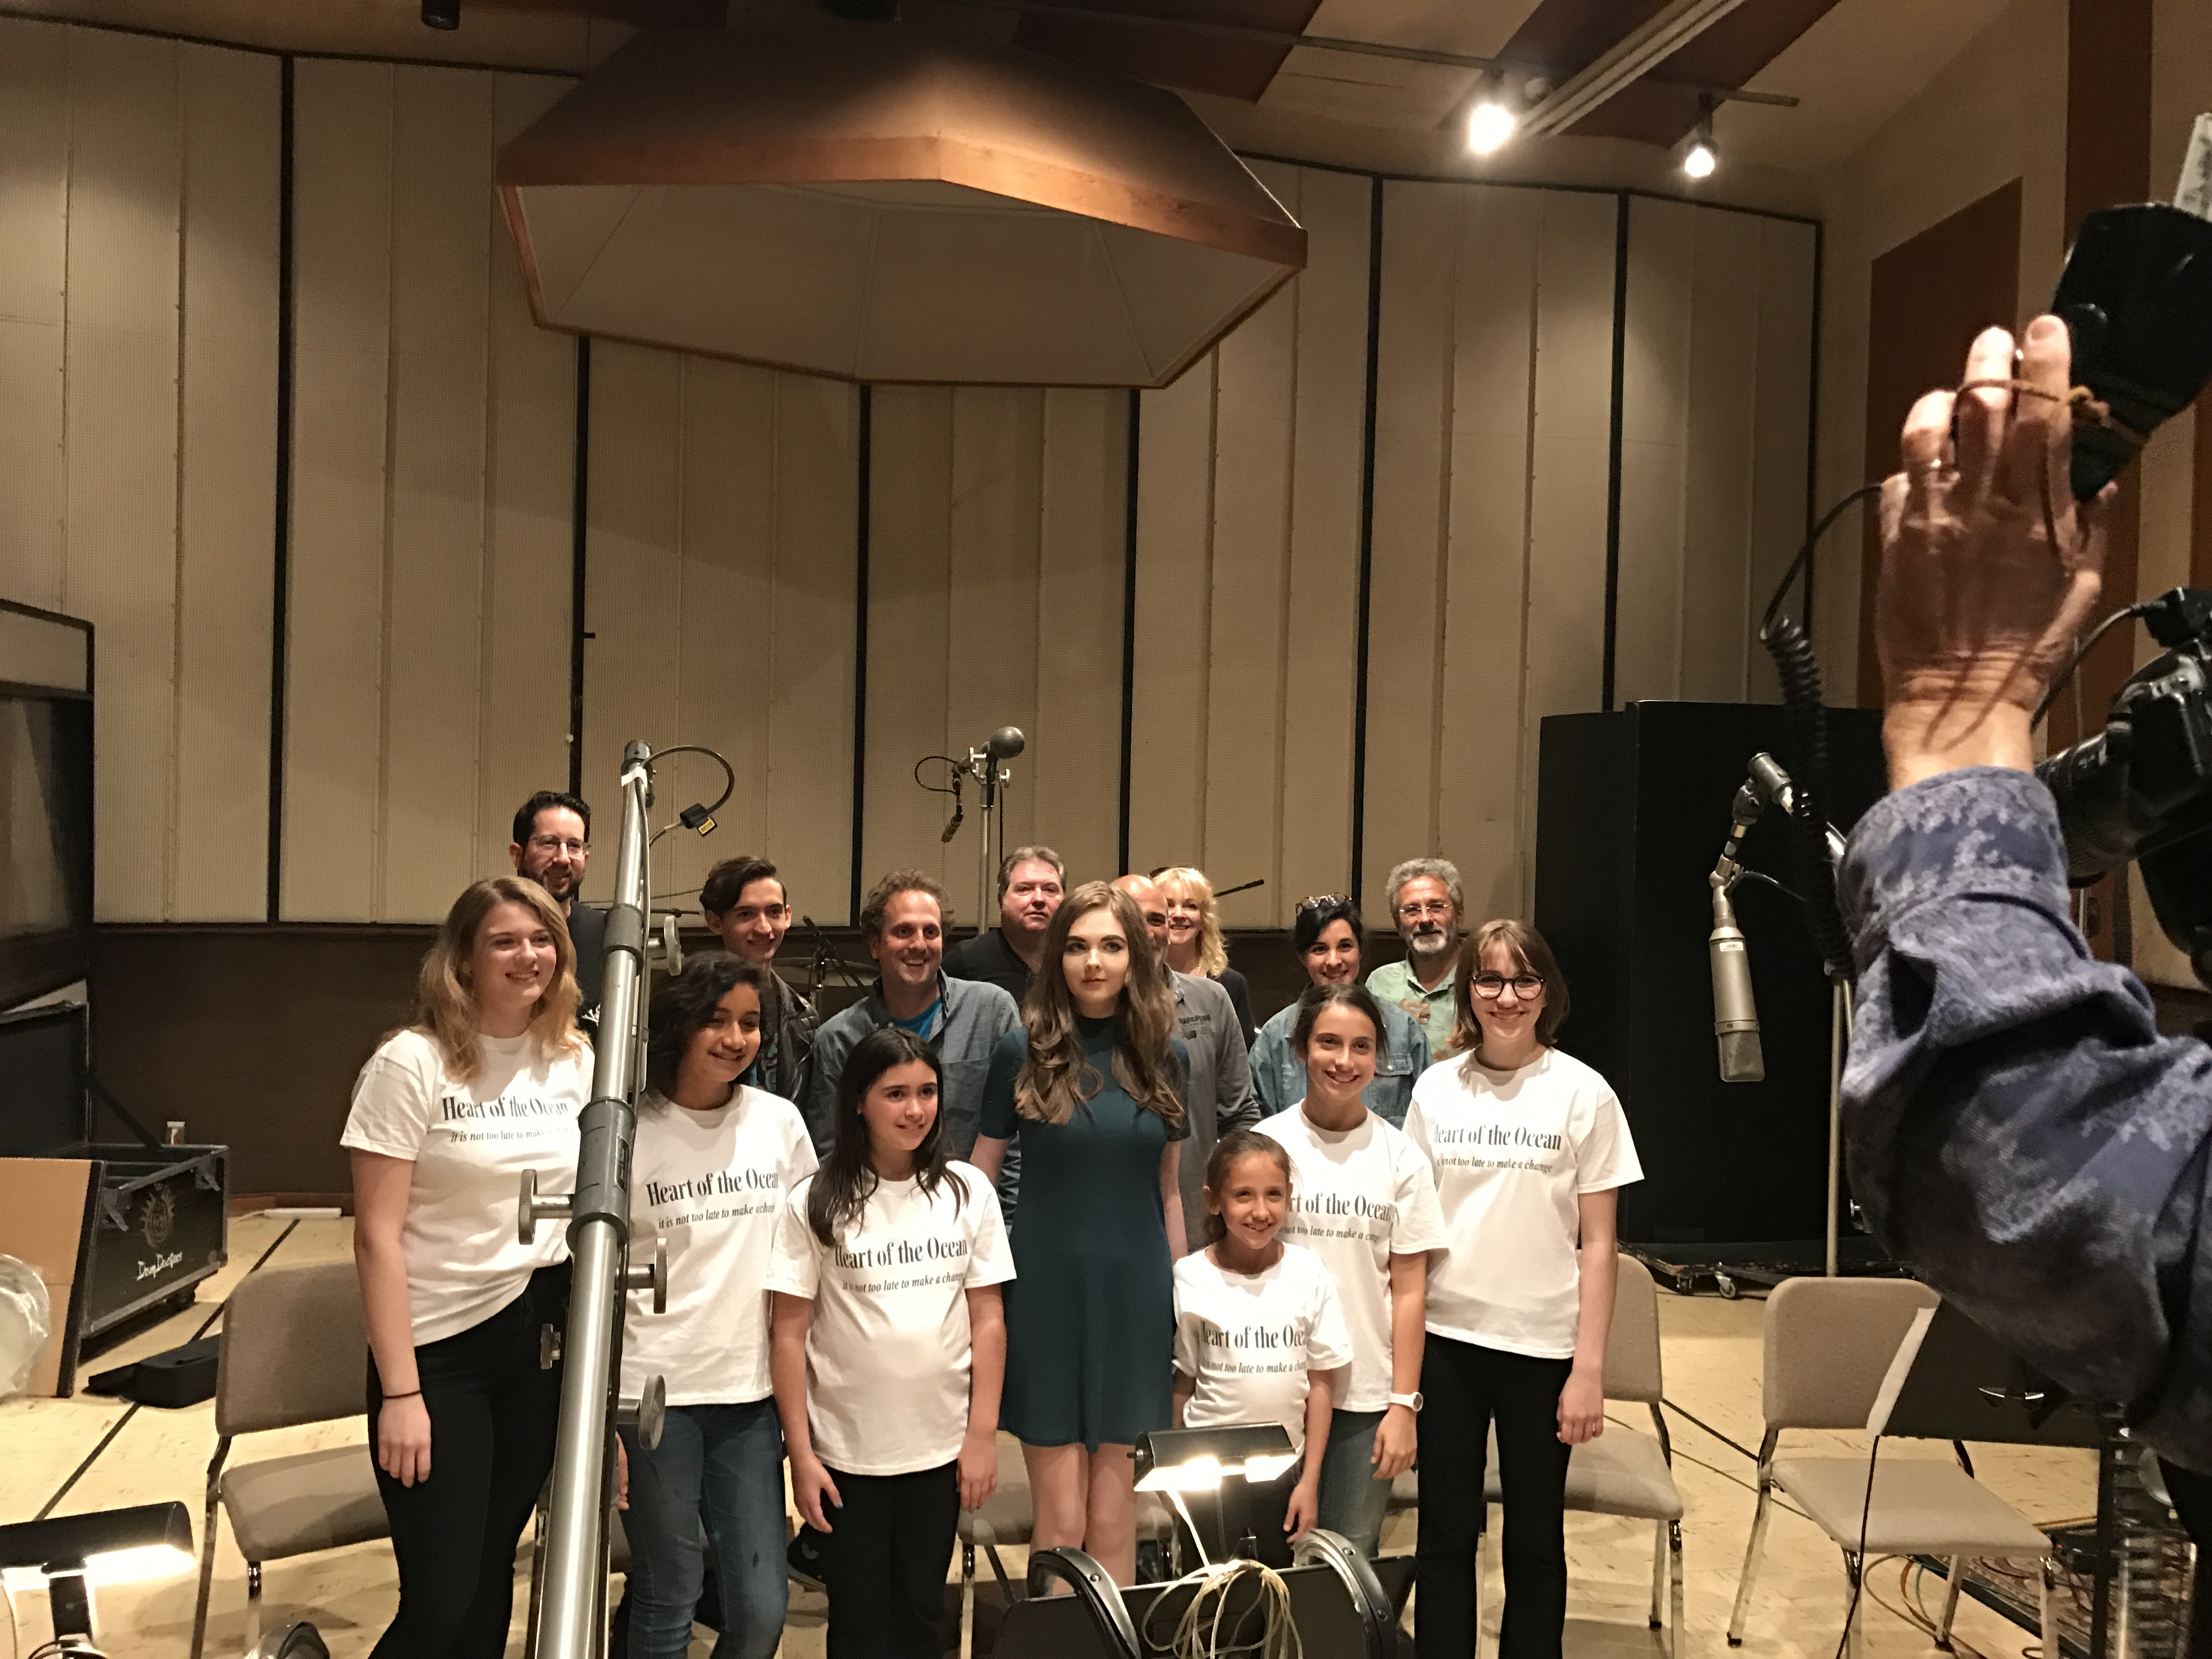 MUSYCA Children's Choir with Maisy Kay and Wonders of the Sea 3D Team